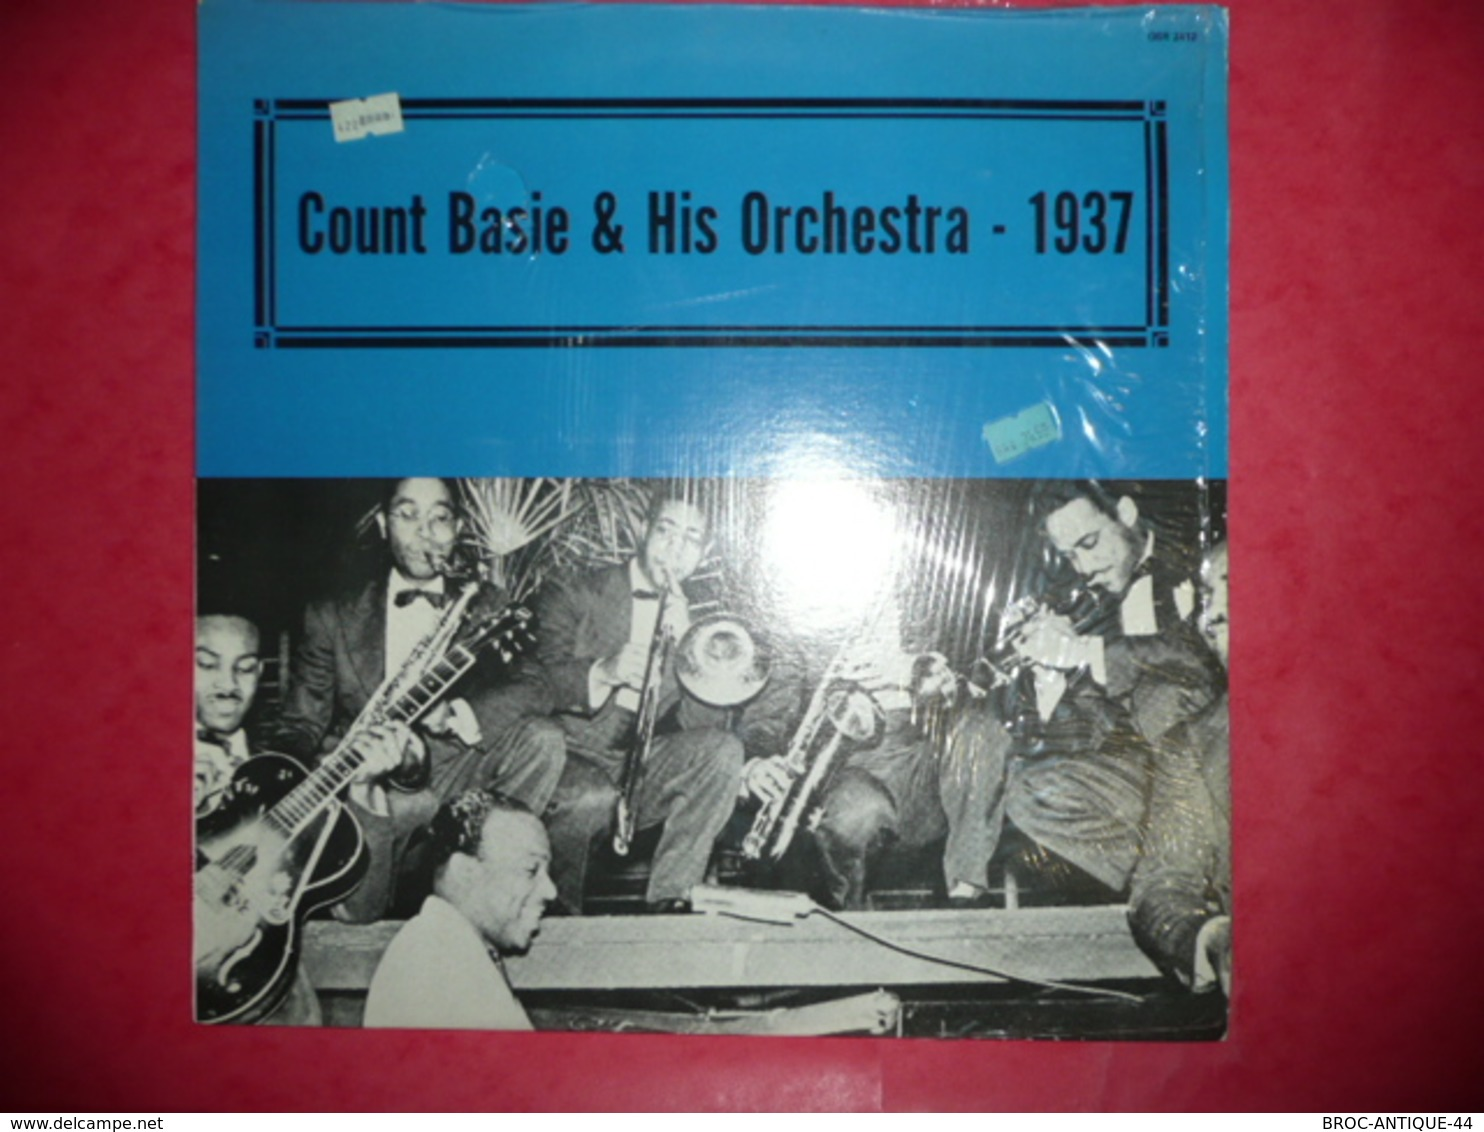 LP33 N°558 - COUNT BASIE & HIS ORCHESTRA - 1937 - COMPILATION 12 TITRES - Jazz